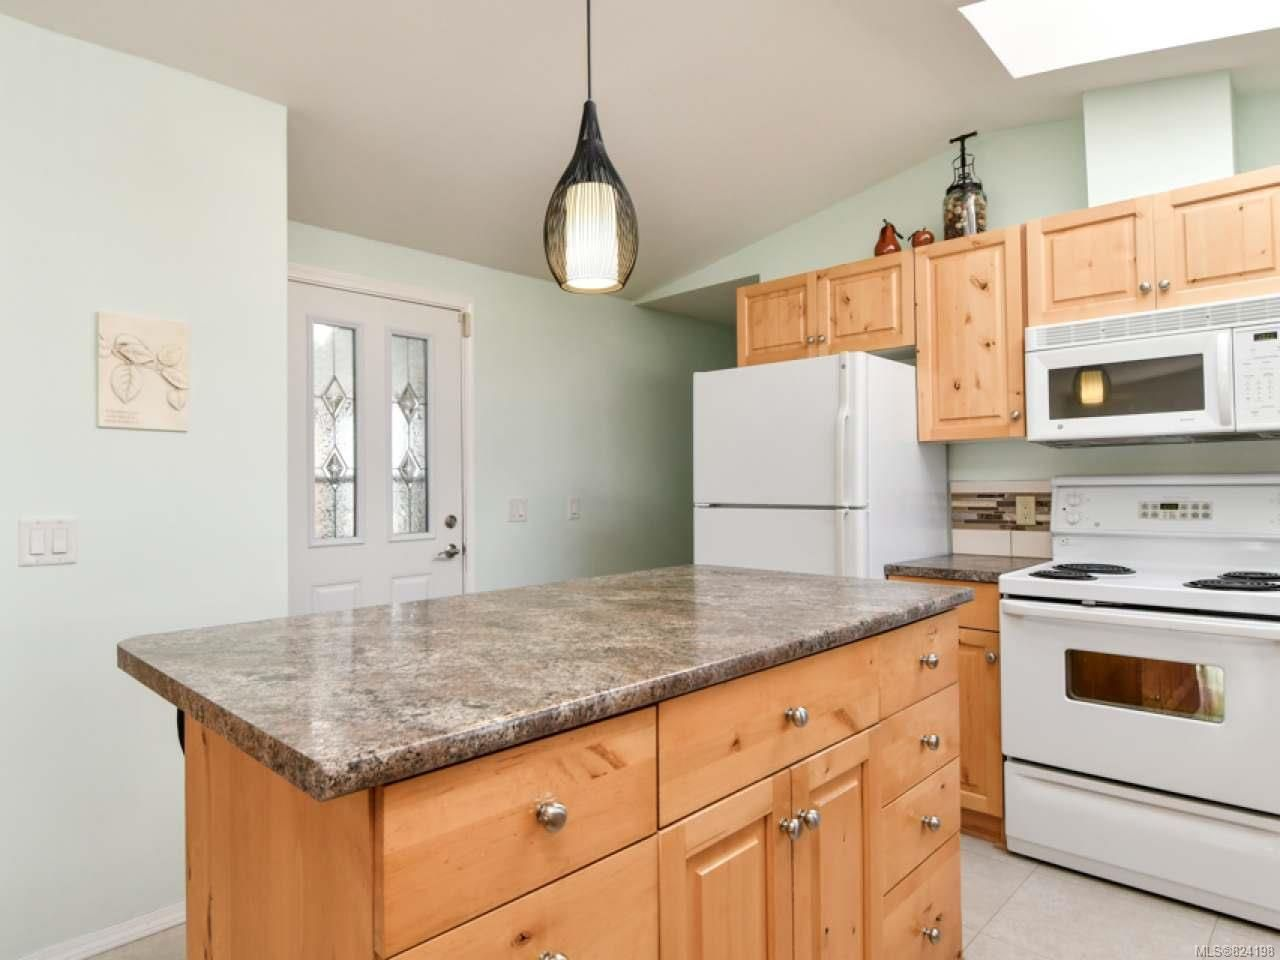 Photo 15: Photos: 38 951 Homewood Rd in CAMPBELL RIVER: CR Campbell River Central Manufactured Home for sale (Campbell River)  : MLS®# 824198